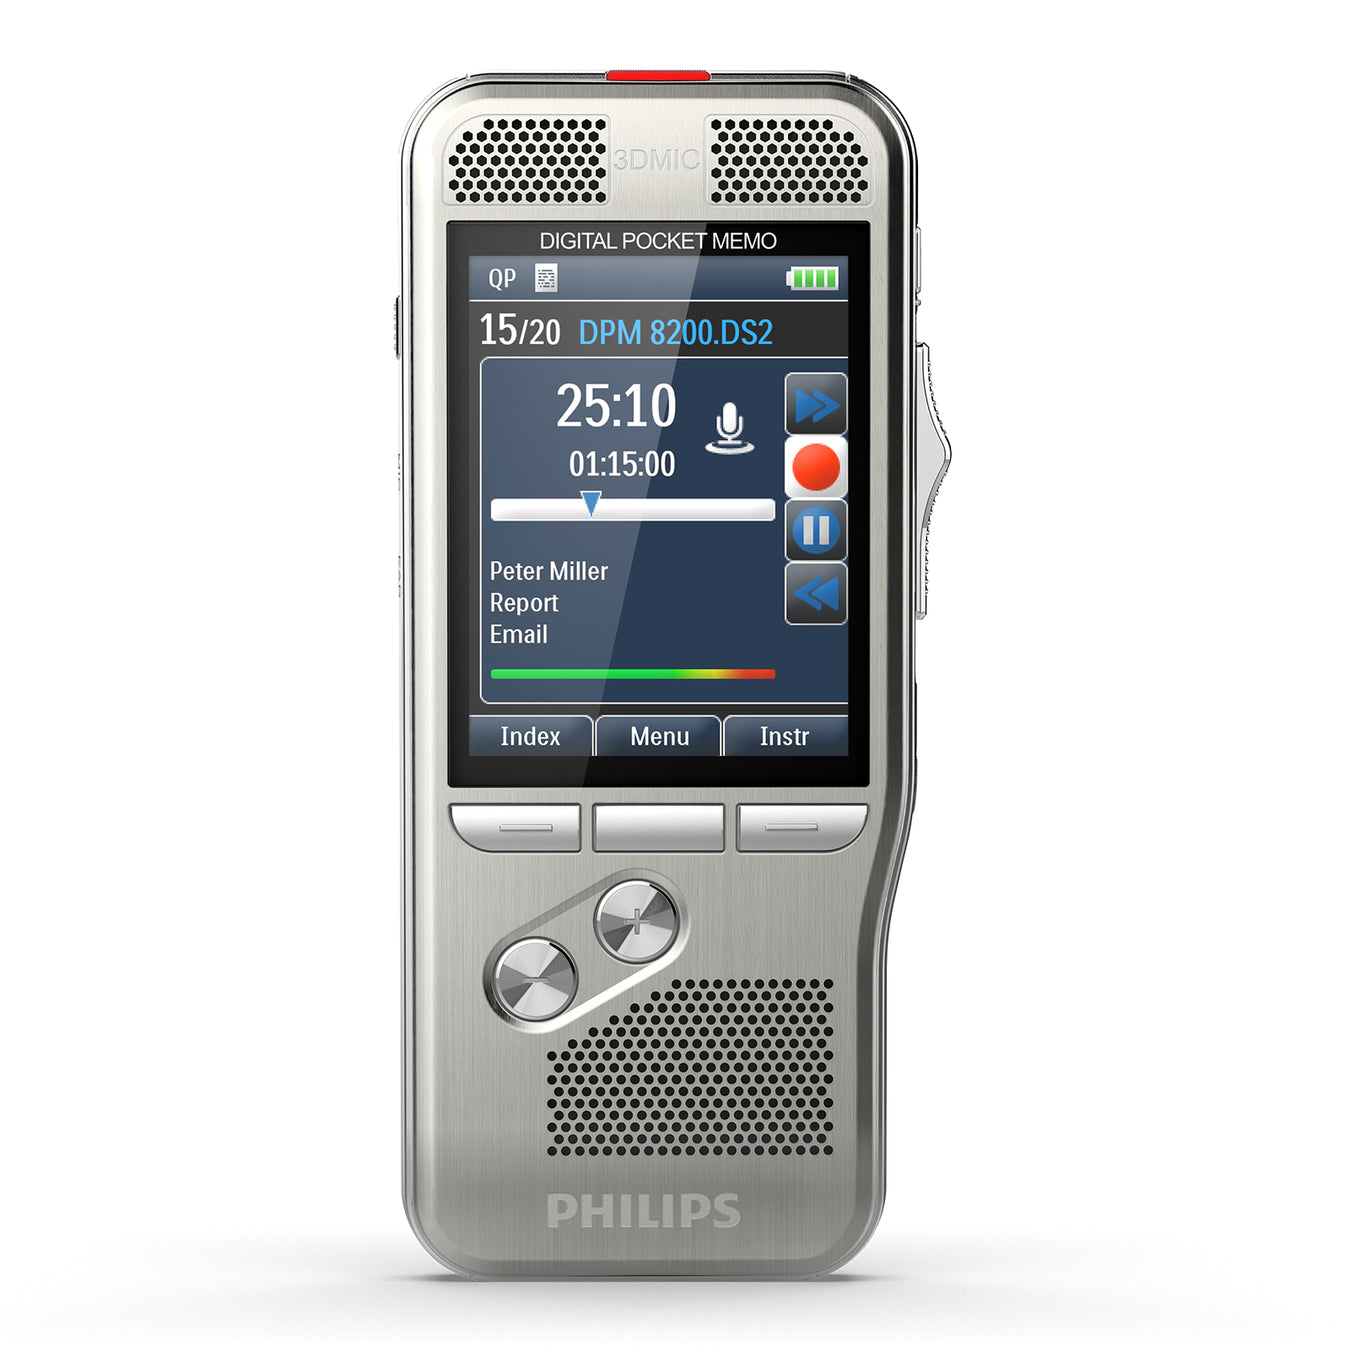 Speech Products by Speak-IT Solutions - Philips and Nuance Professional Dictation & Speech Recognition Solutions - Professional Dictation Devices and Digital Voice Recorders